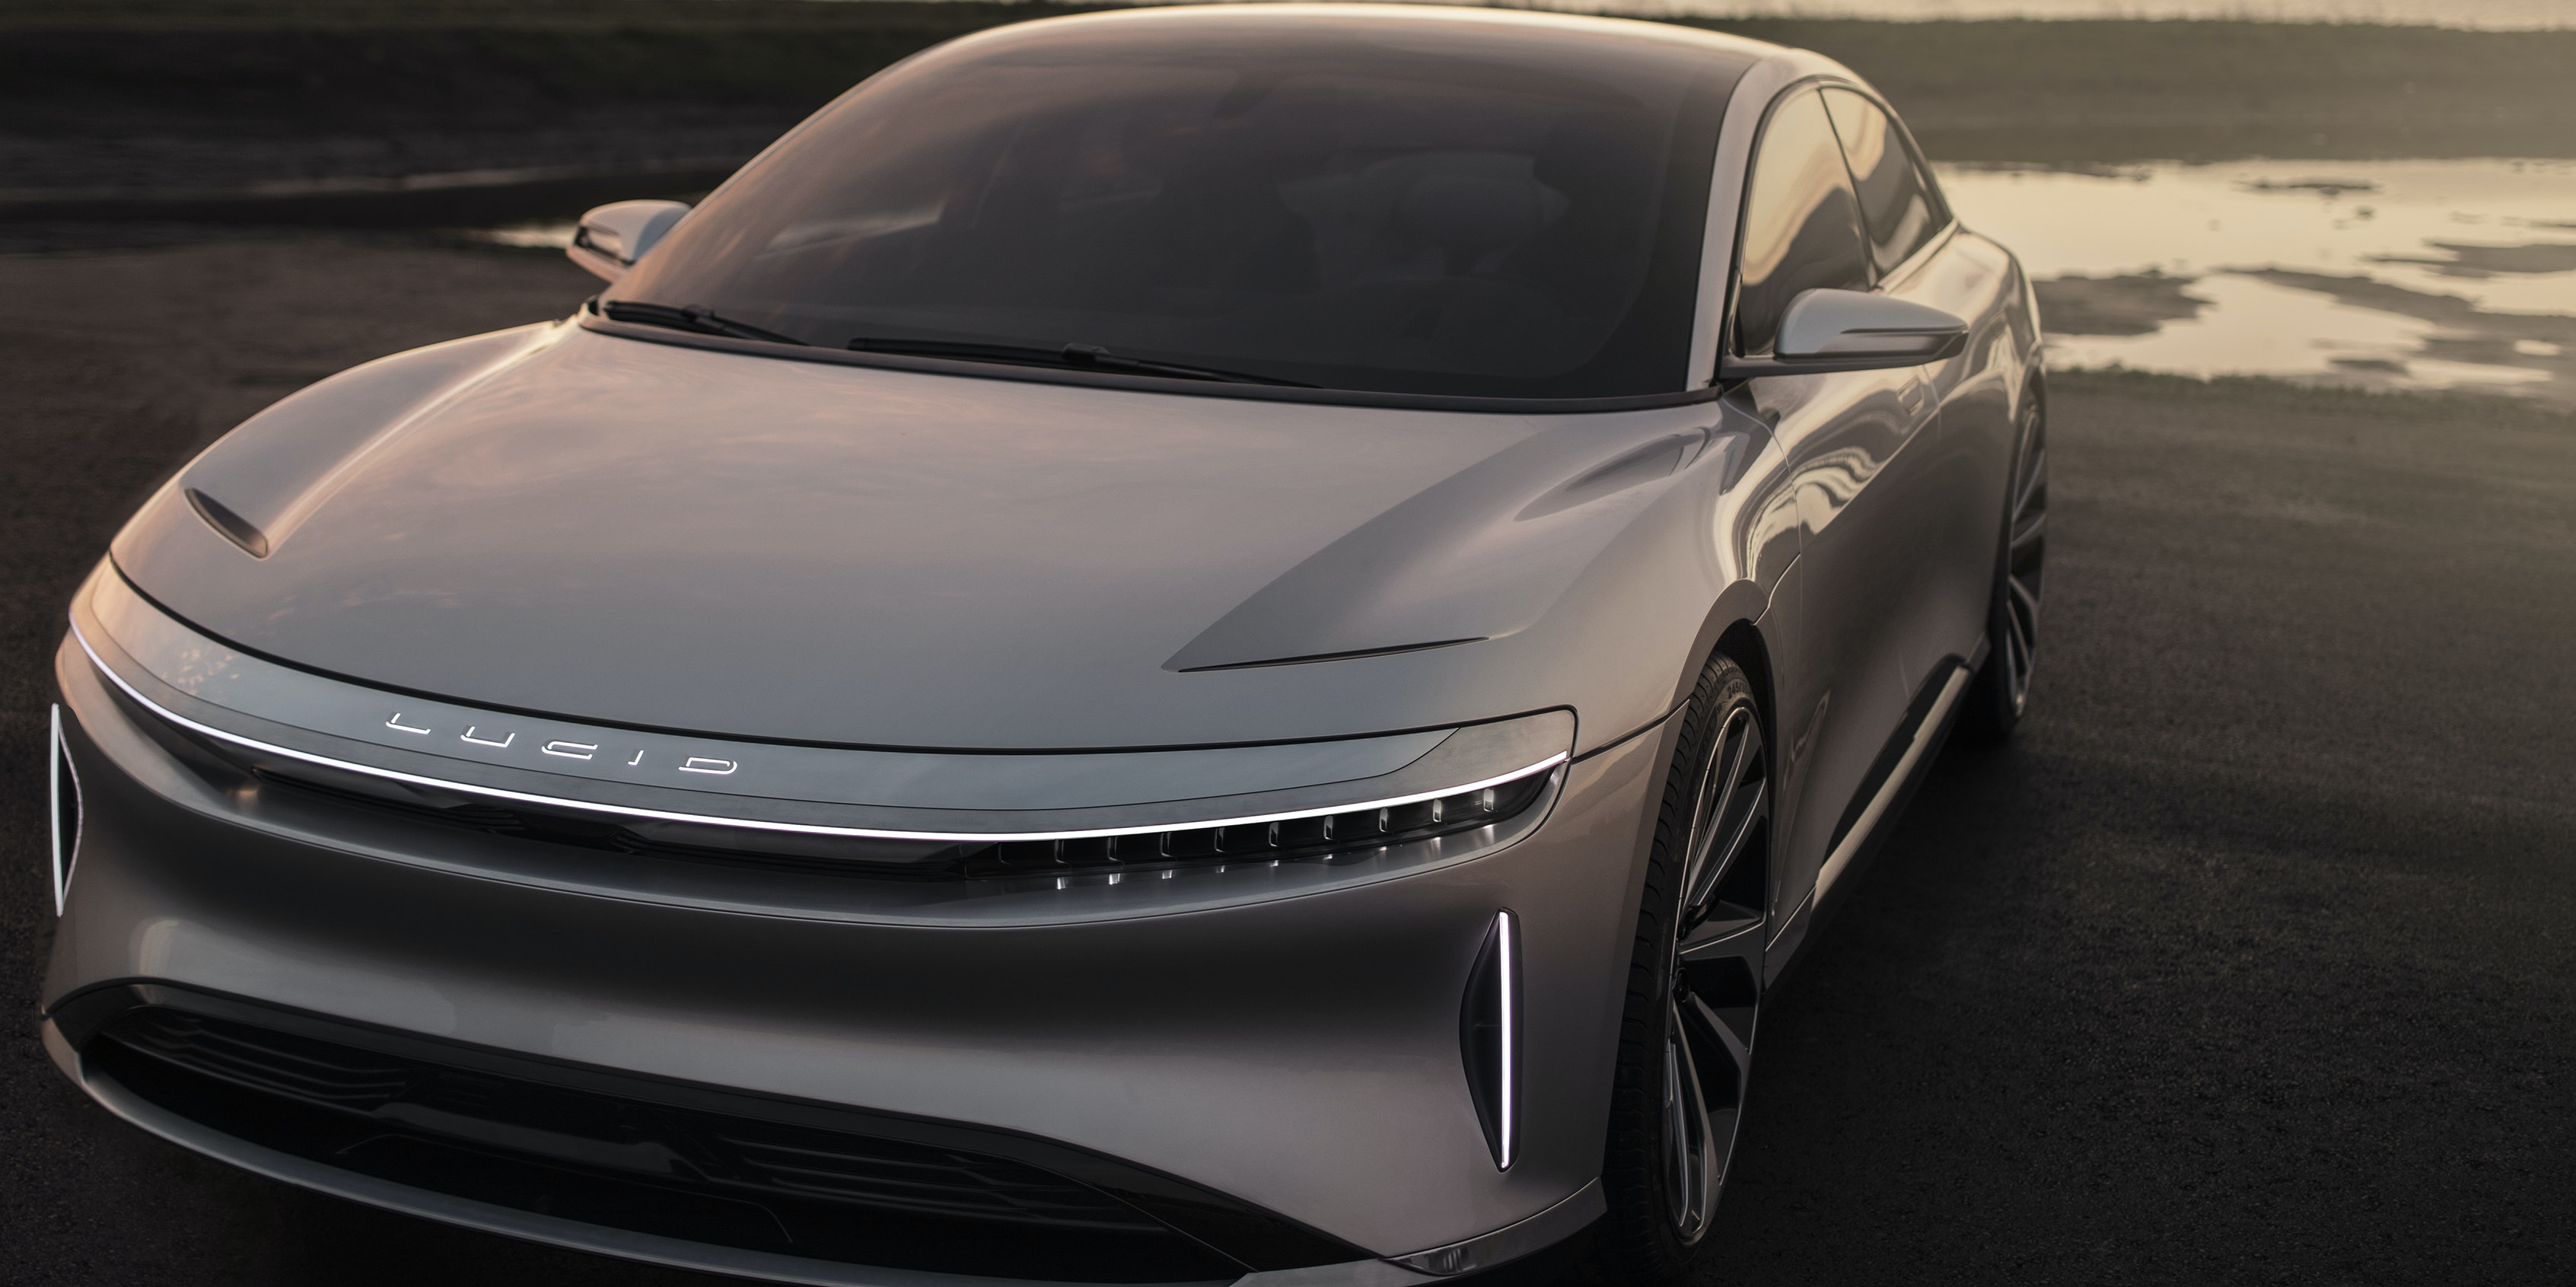 Lucid Motors Unveils Its Electric Sedan to Rival Tesla's Model S